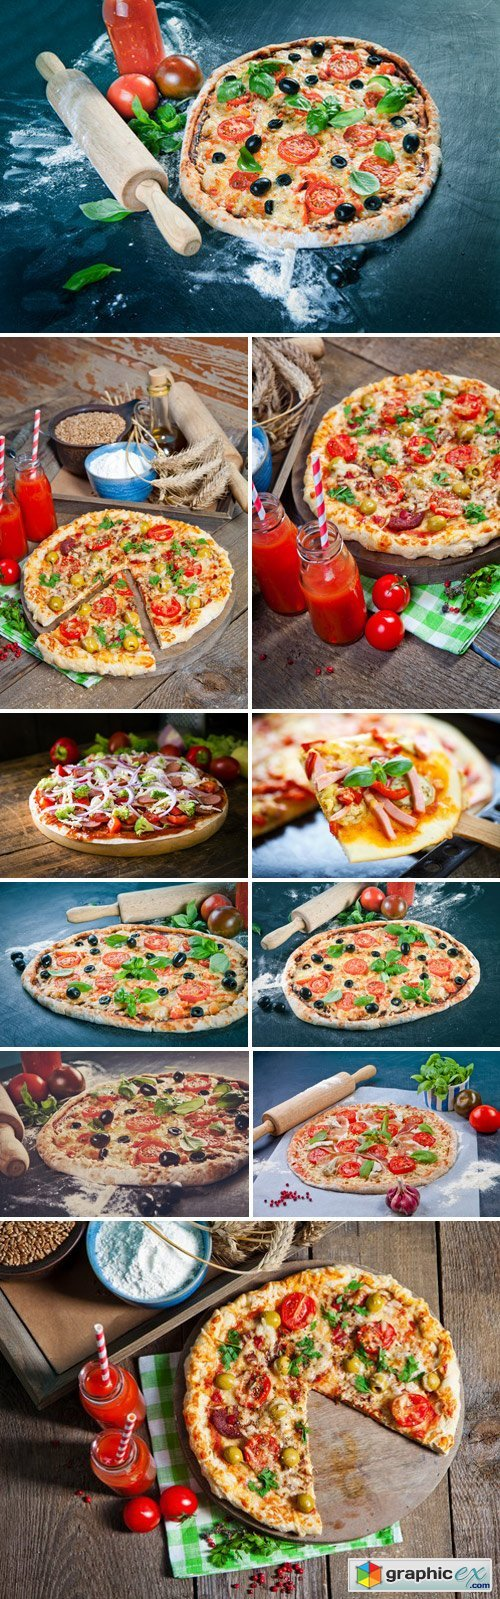 Stock Photos - Homemade Pizza. the dough with the addition of fiber and provencal herbs